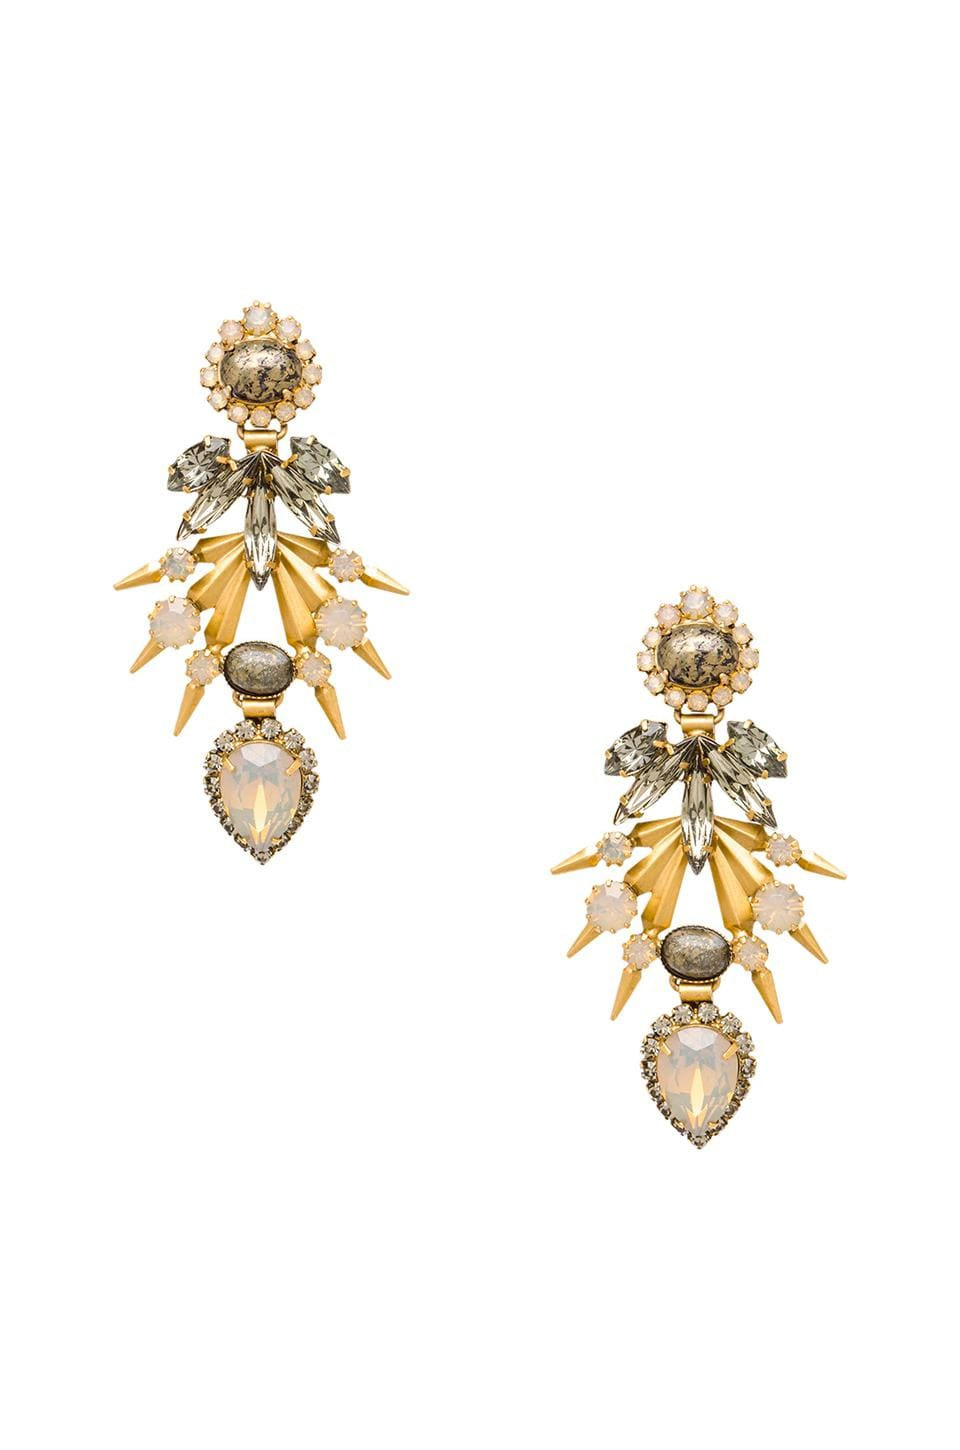 Elizabeth Cole Earrings in Champagne Crystal